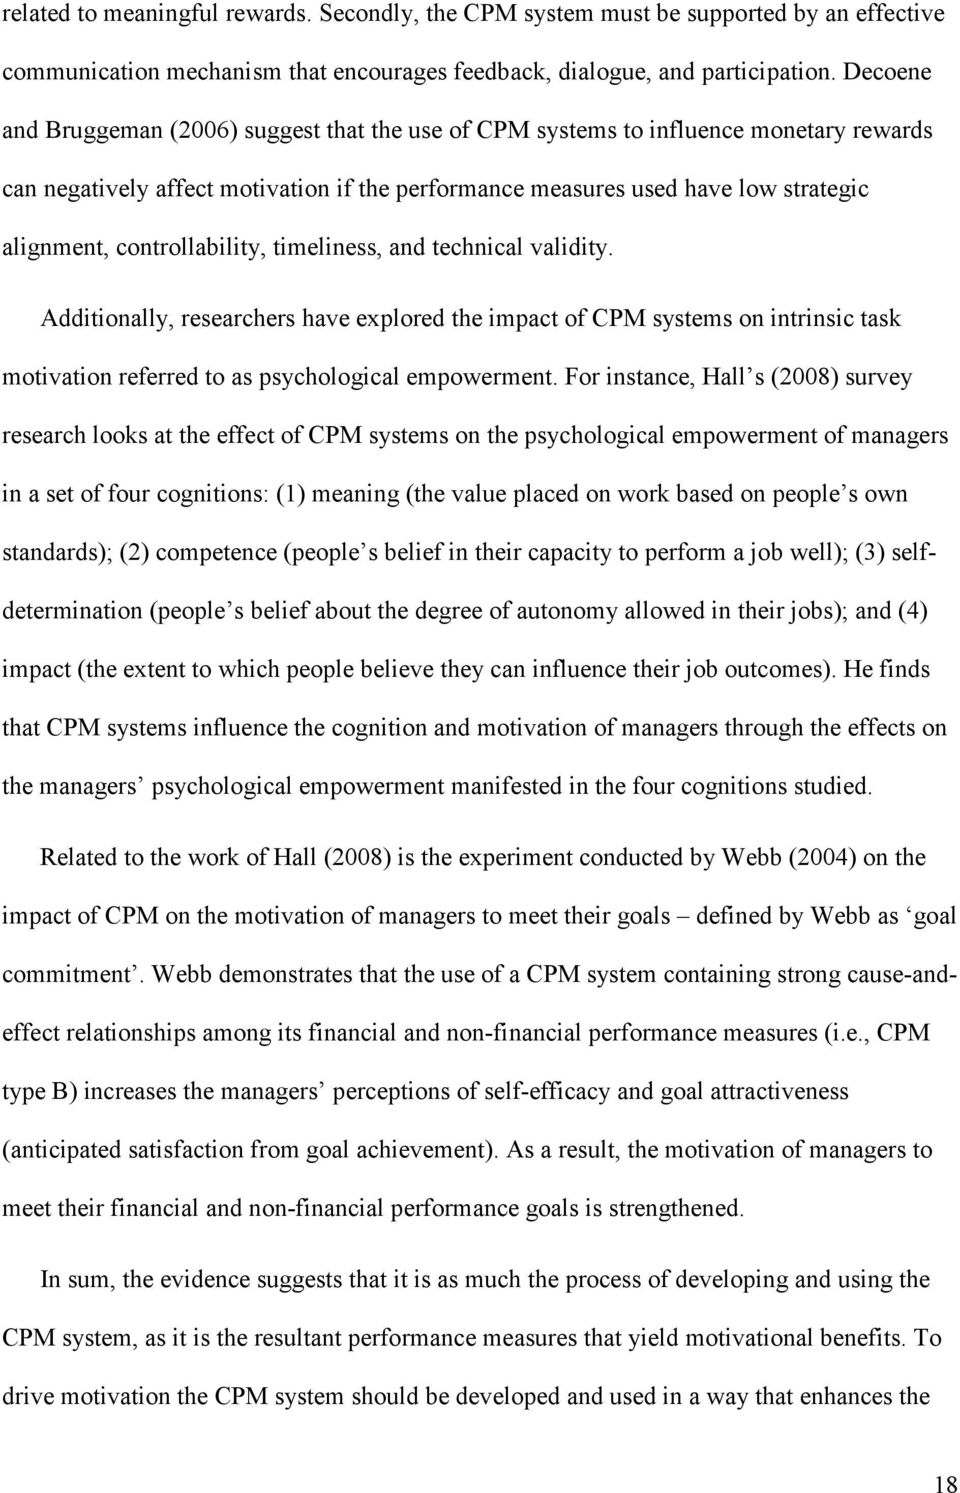 controllability, timeliness, and technical validity. Additionally, researchers have explored the impact of CPM systems on intrinsic task motivation referred to as psychological empowerment.